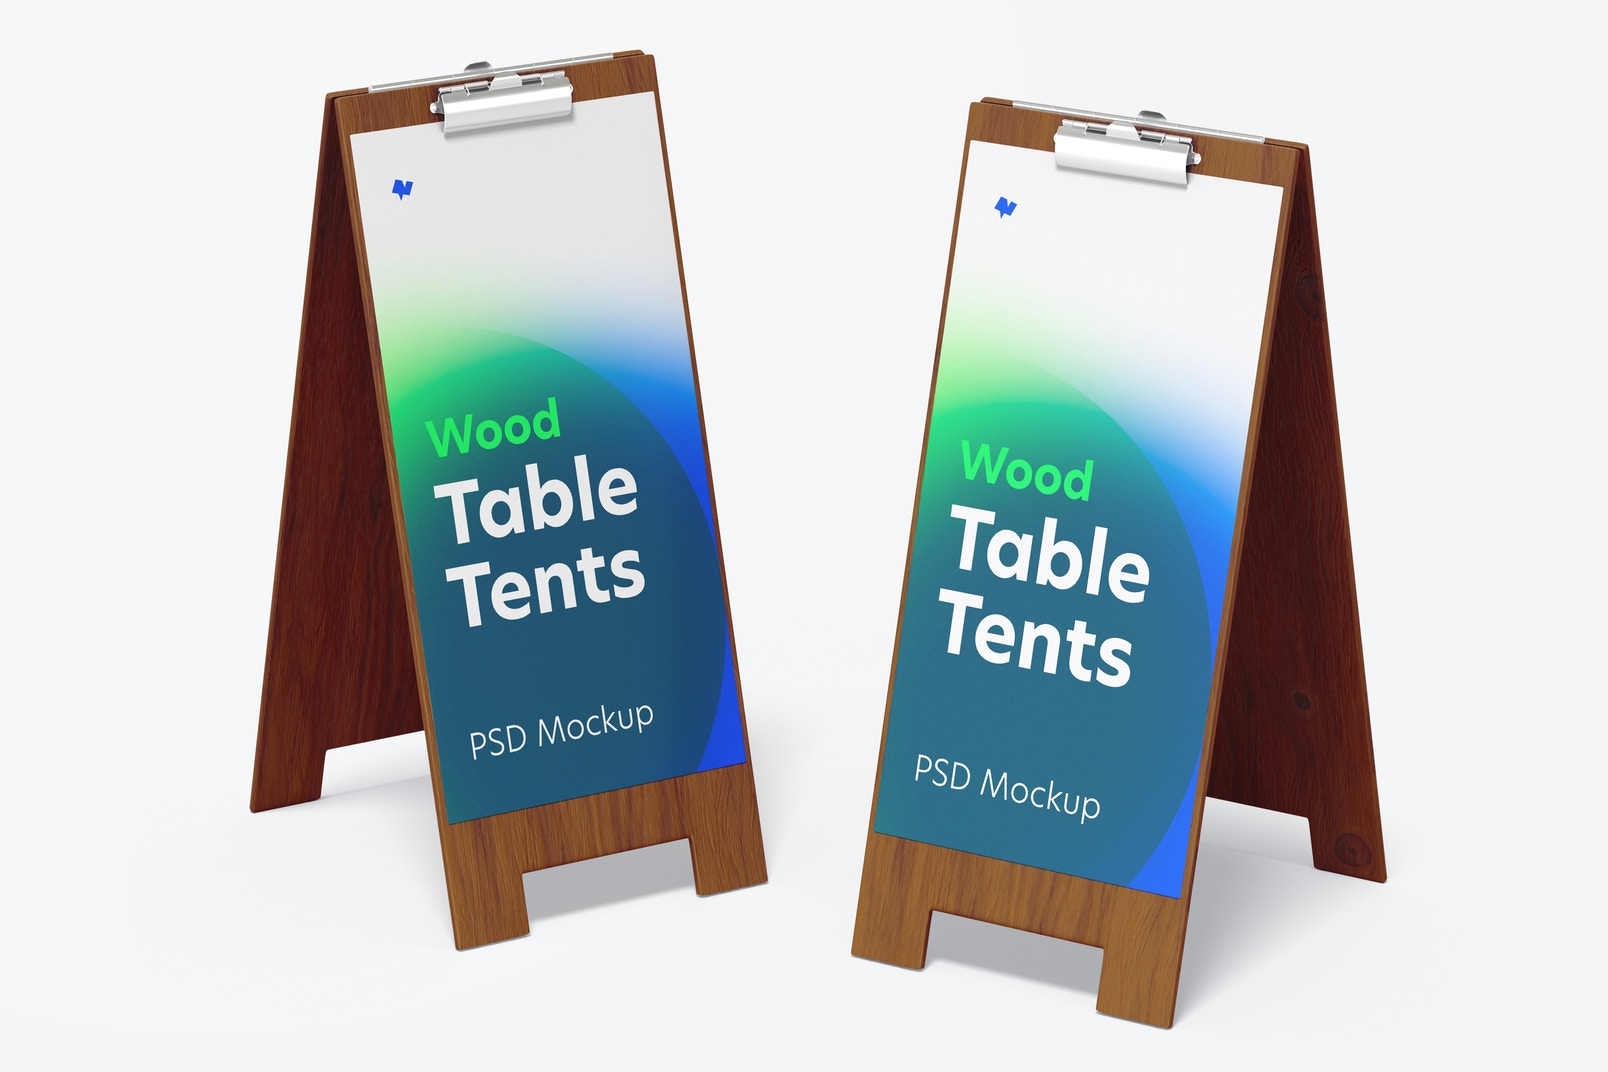 Wood Table Tents with Clip Mockup, Perspective